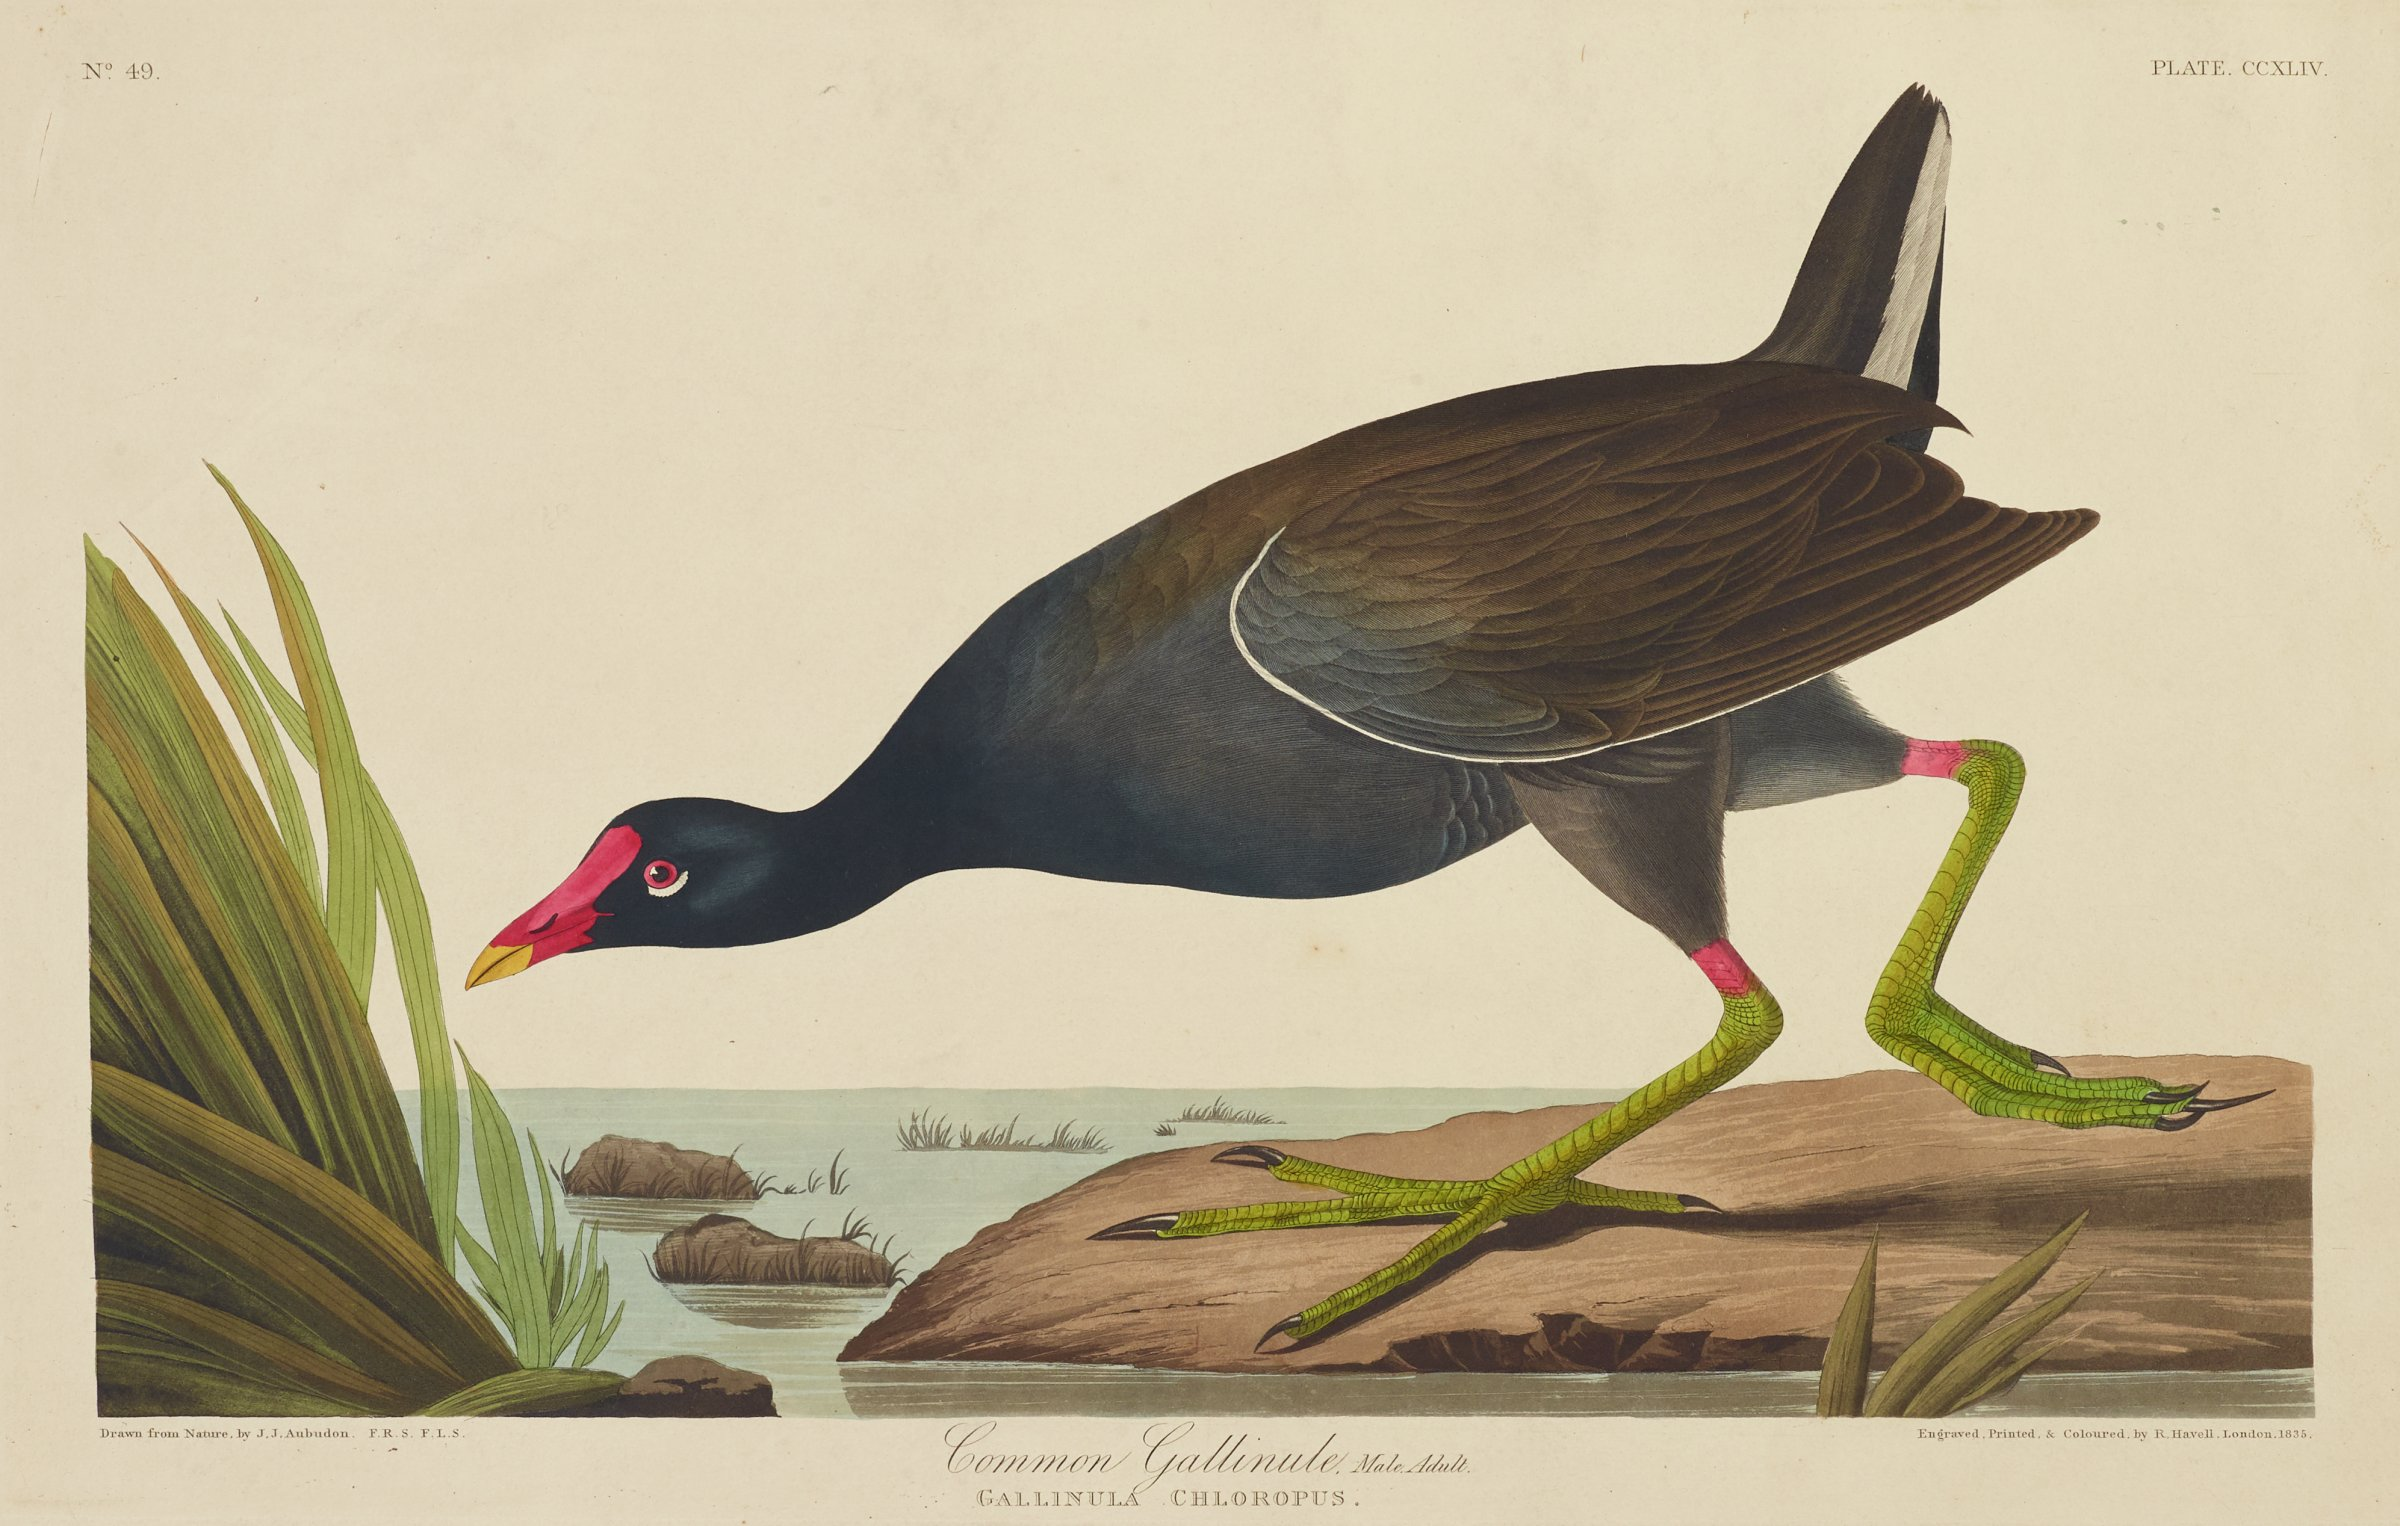 On the edge of a body of water that is scattered with patches of grass and rocks, a black bird with a red bill crouches forward. The bird is characterized by a white stripe running along the edge of its wing and another up its tail. It has green talons that are topped with red bands.